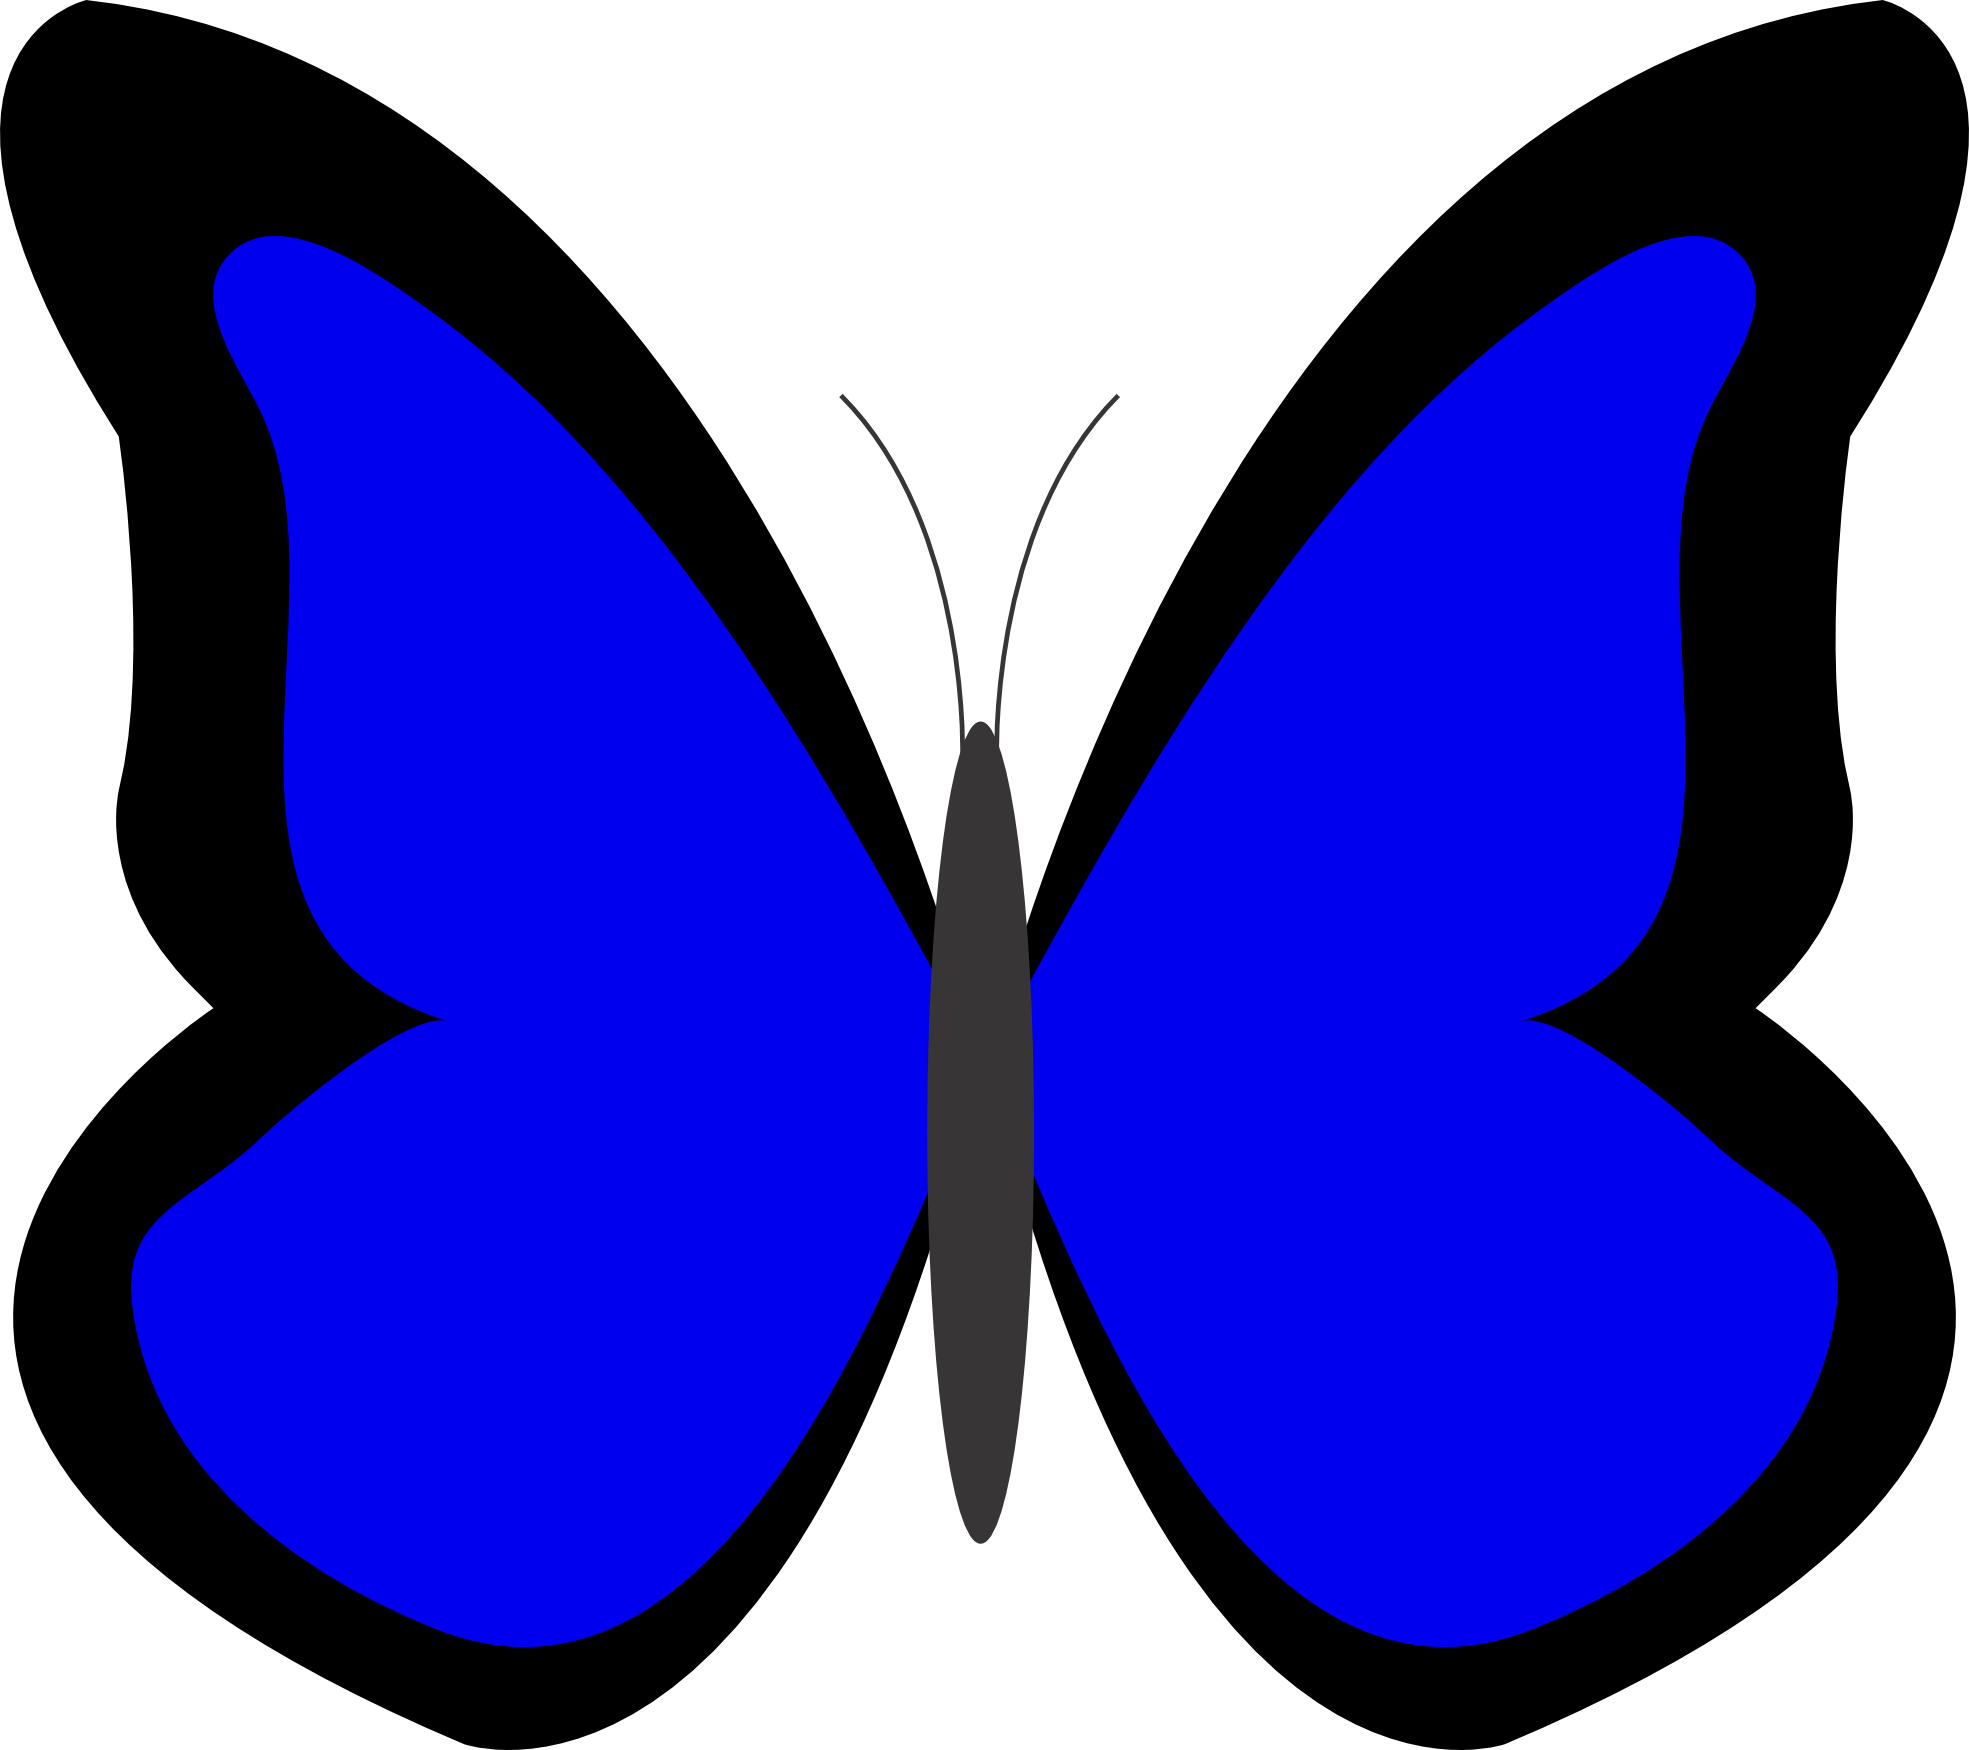 banner freeuse download 5 clipart colored butterfly.  collection of blue.